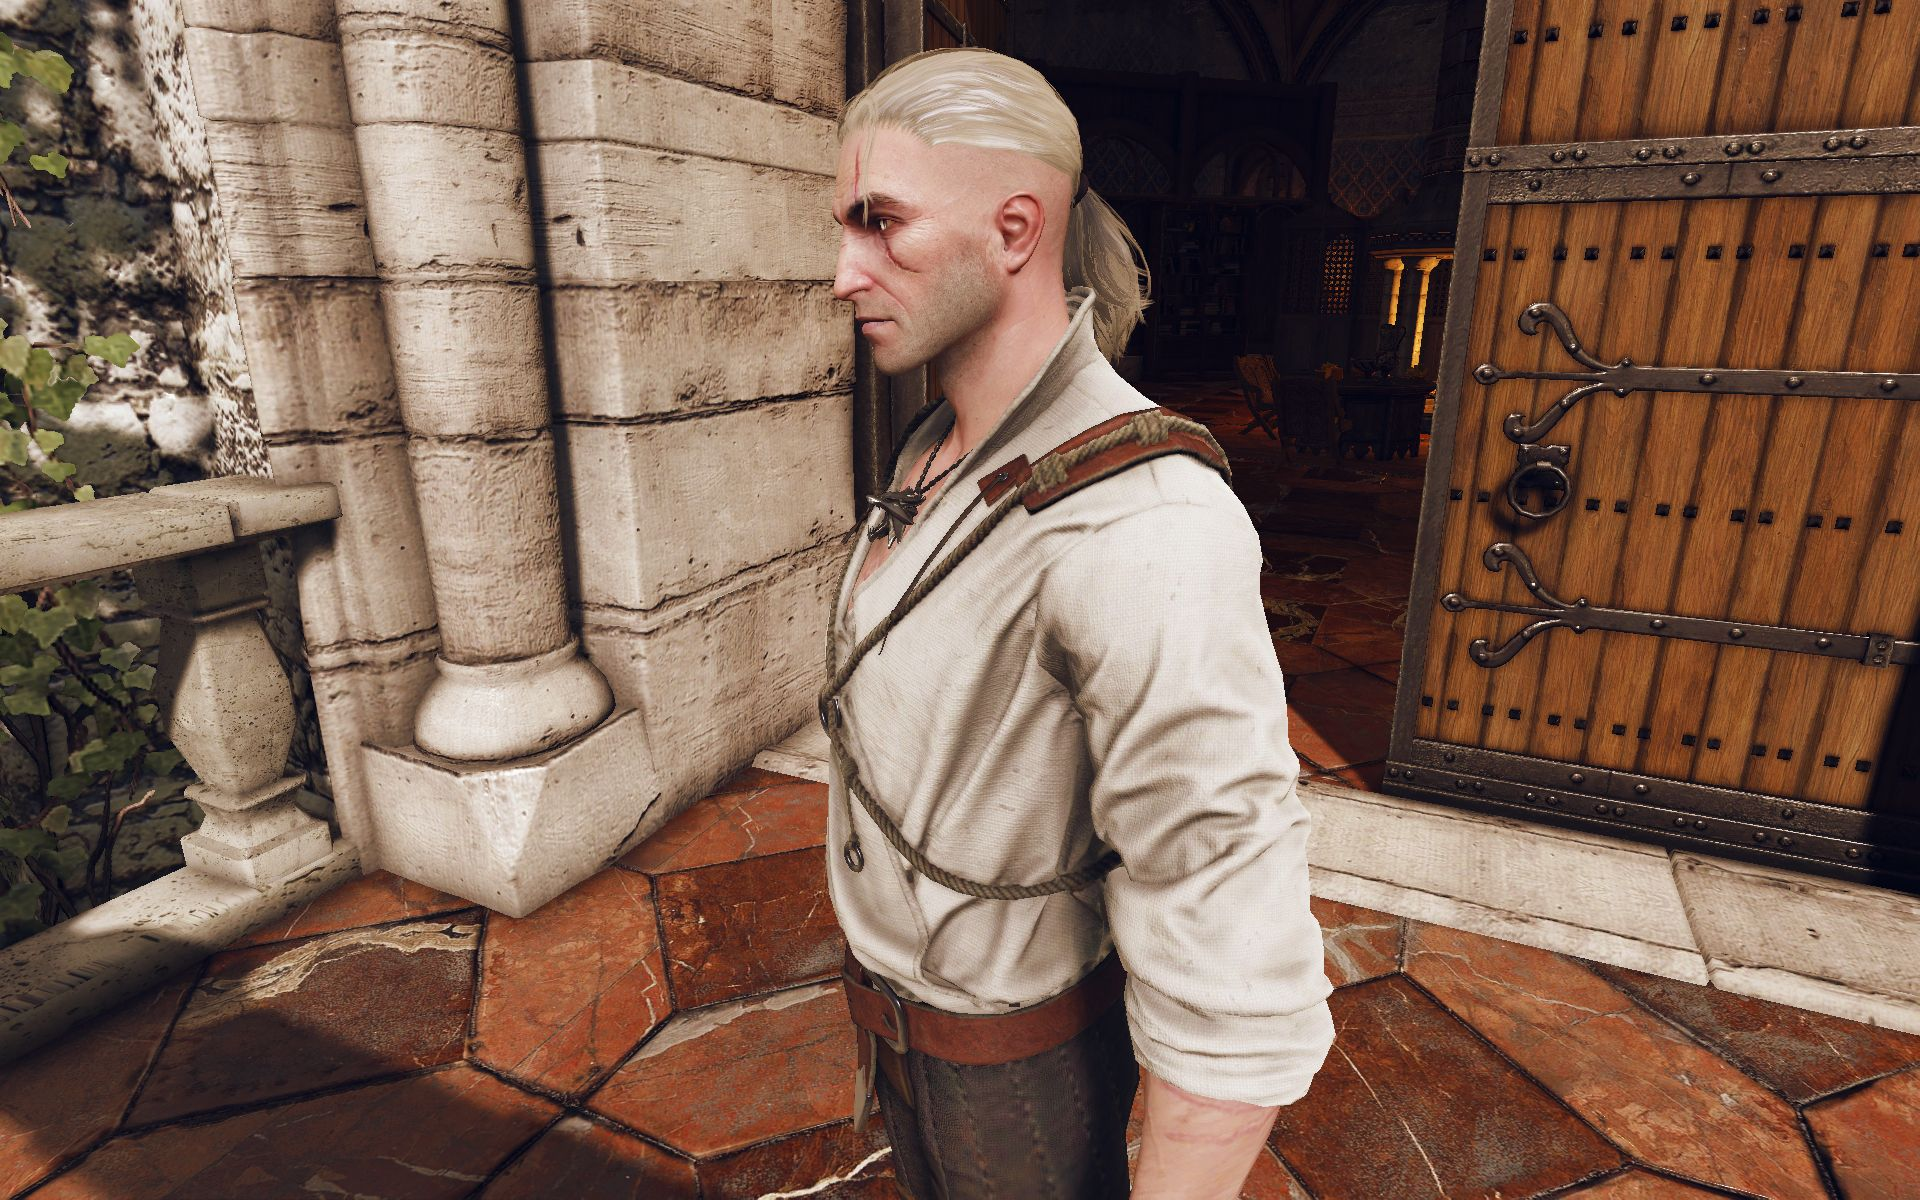 Witcher 3 Hair Styles: Real Shaved Sides Hairstyle At The Witcher 3 Nexus